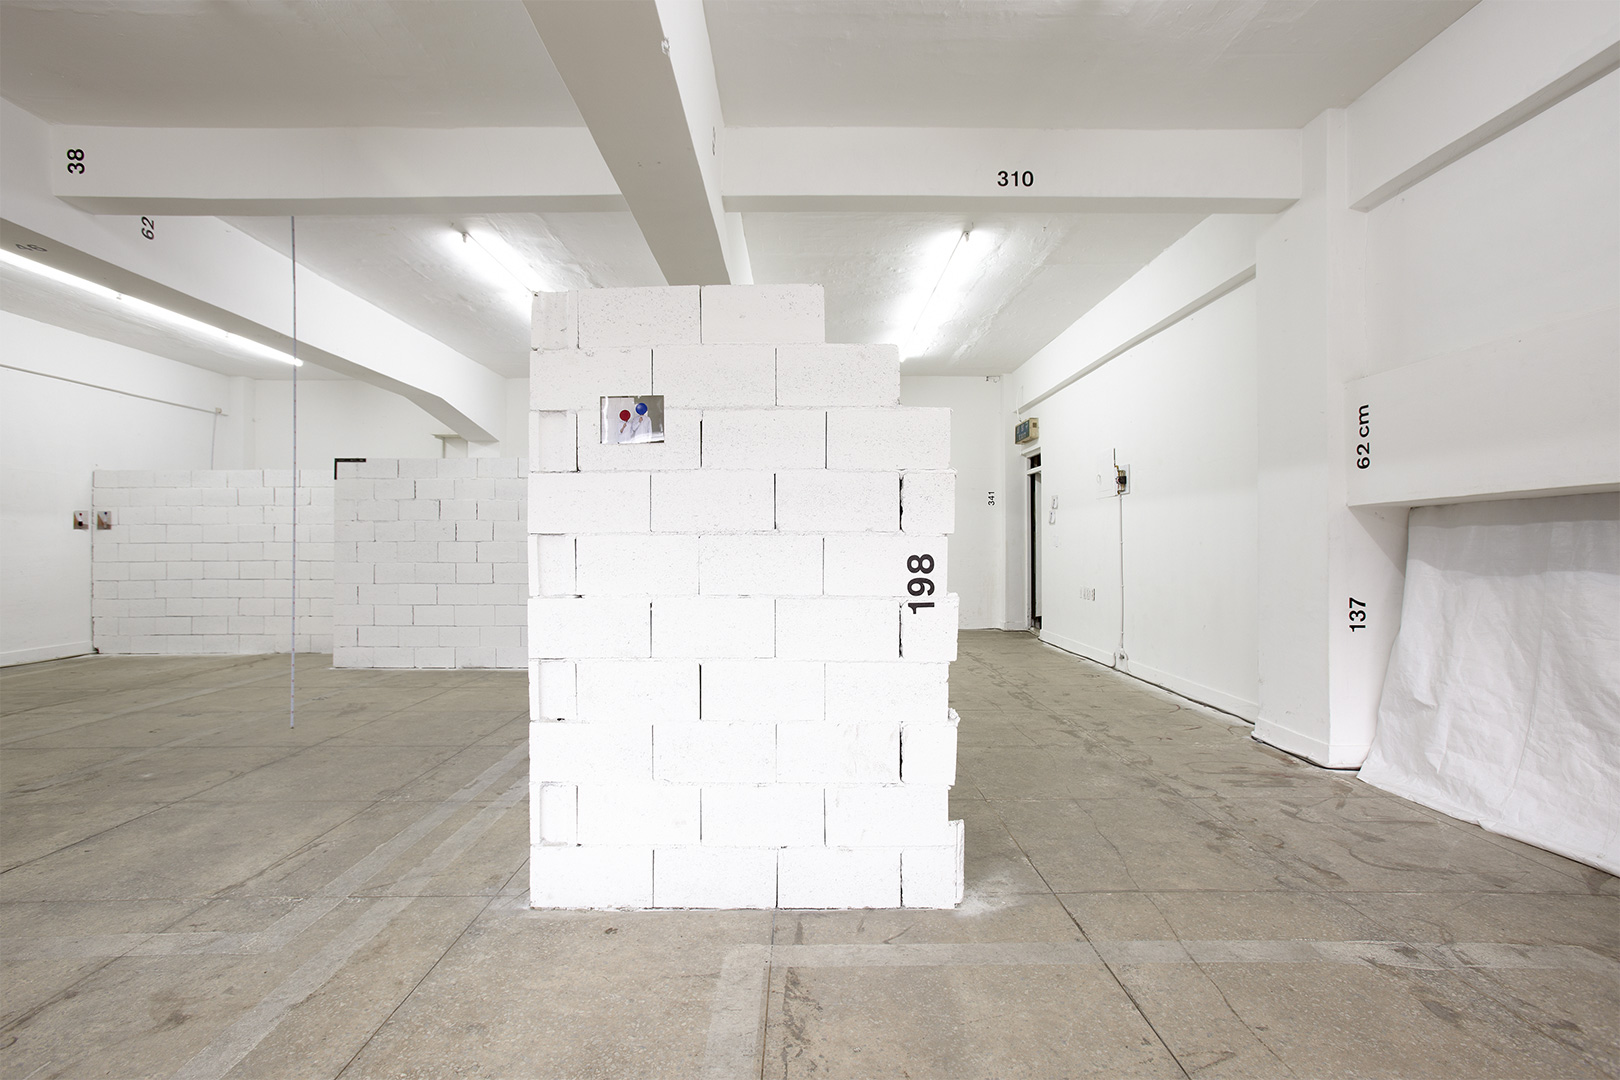 Installation view. Photo by Kim Sang-tae